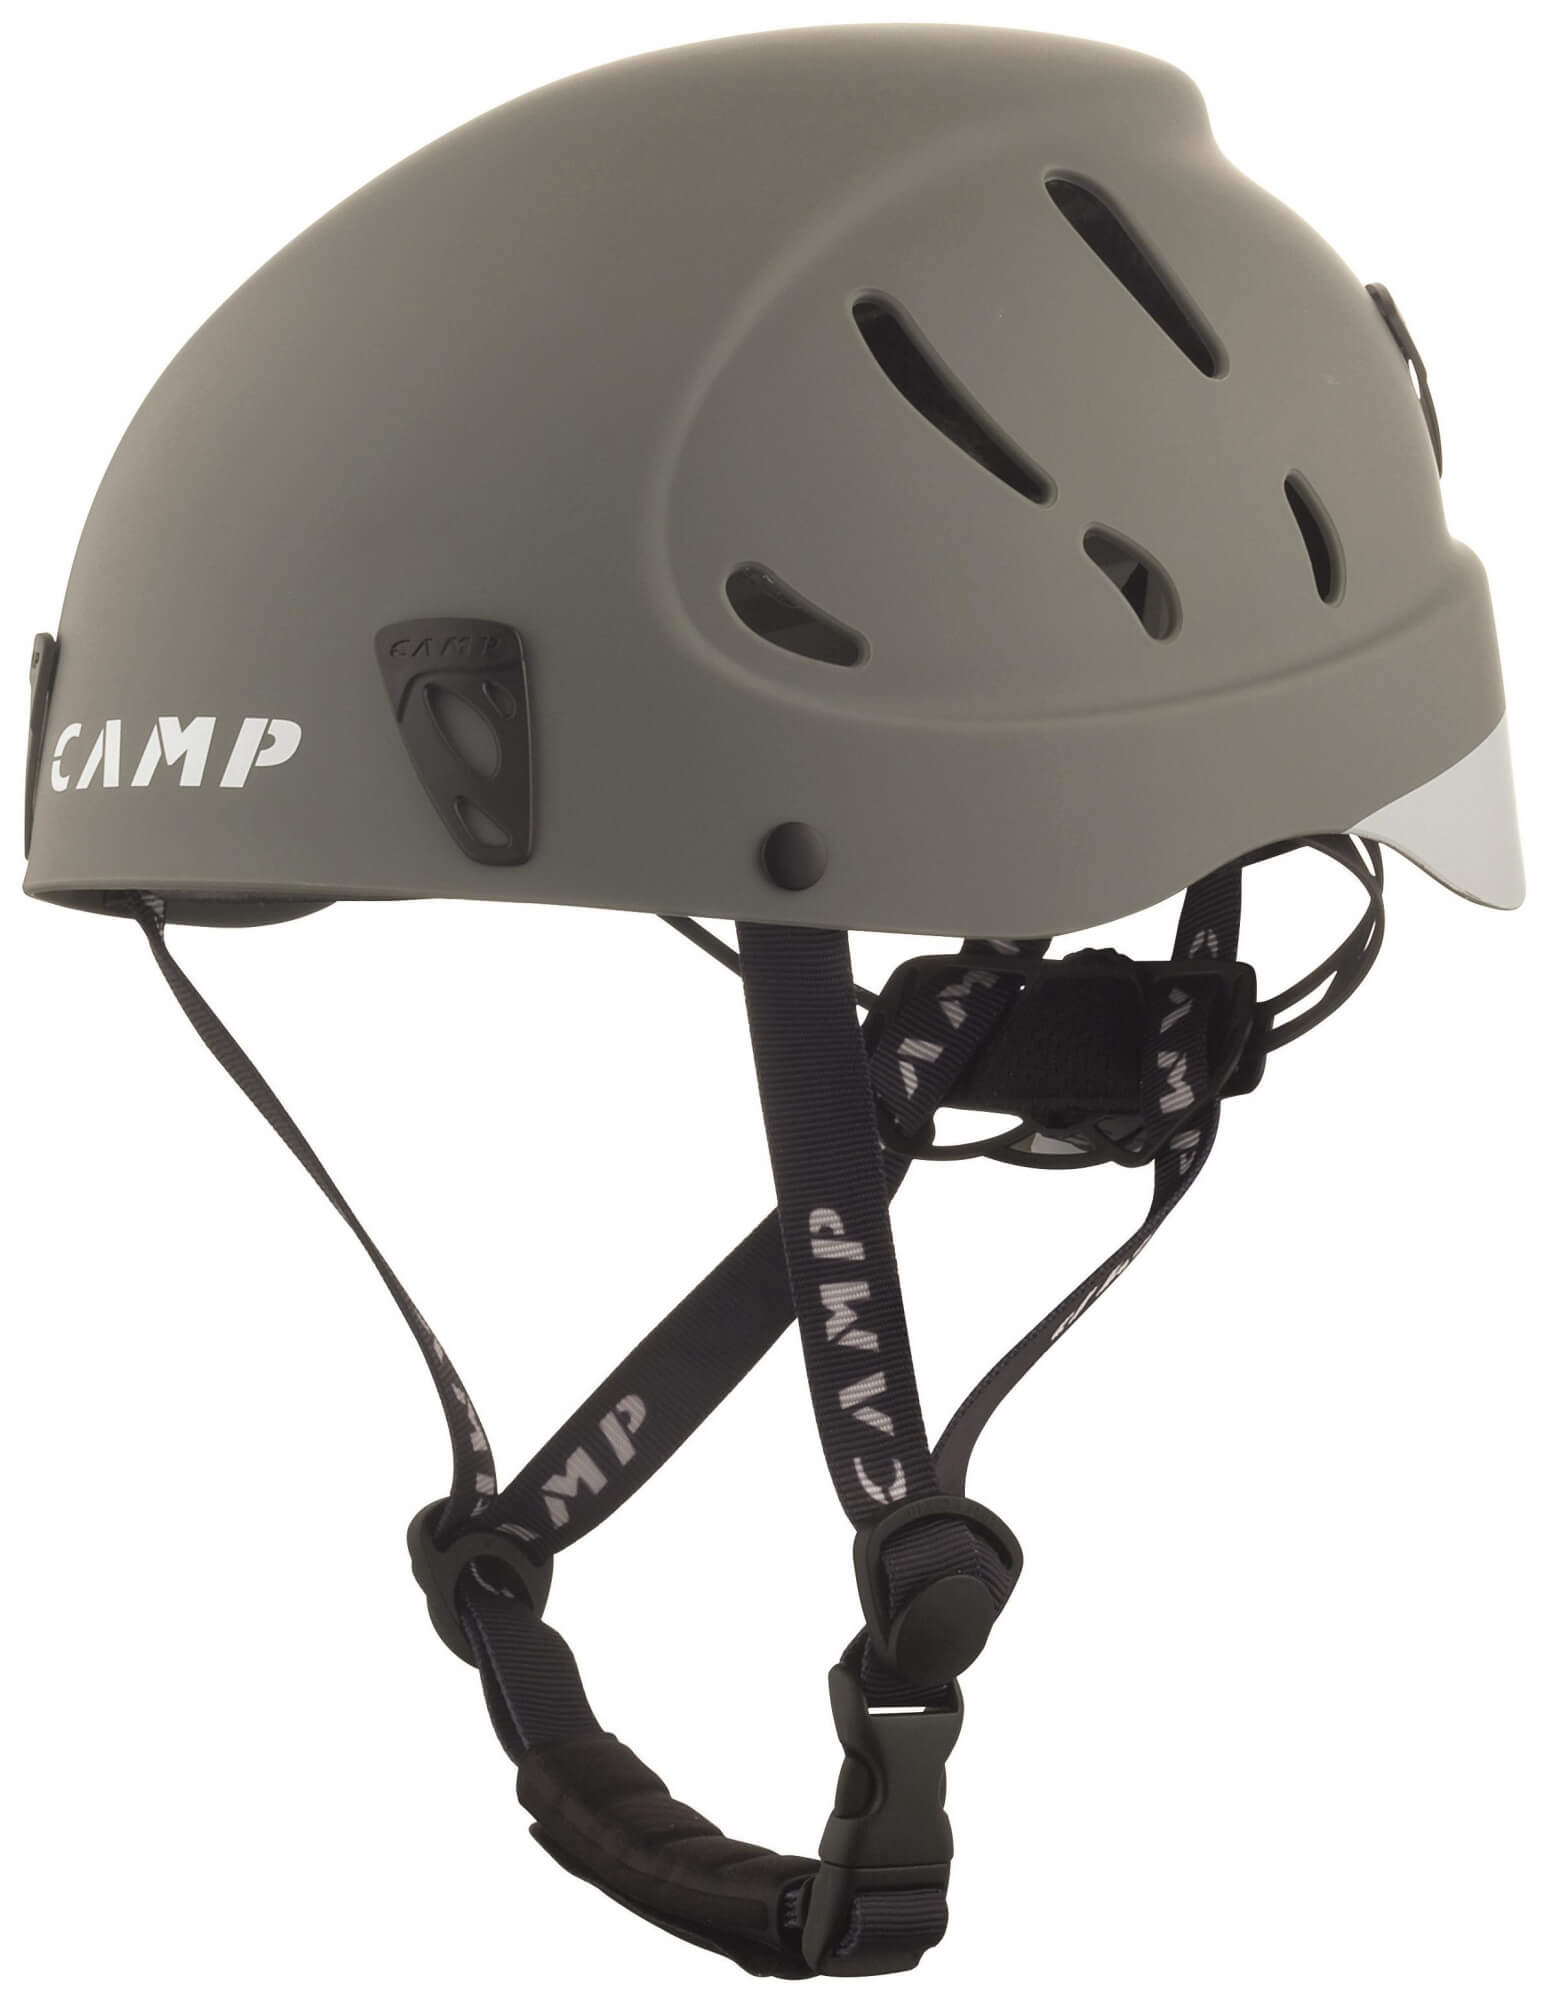 kask abs armour camp